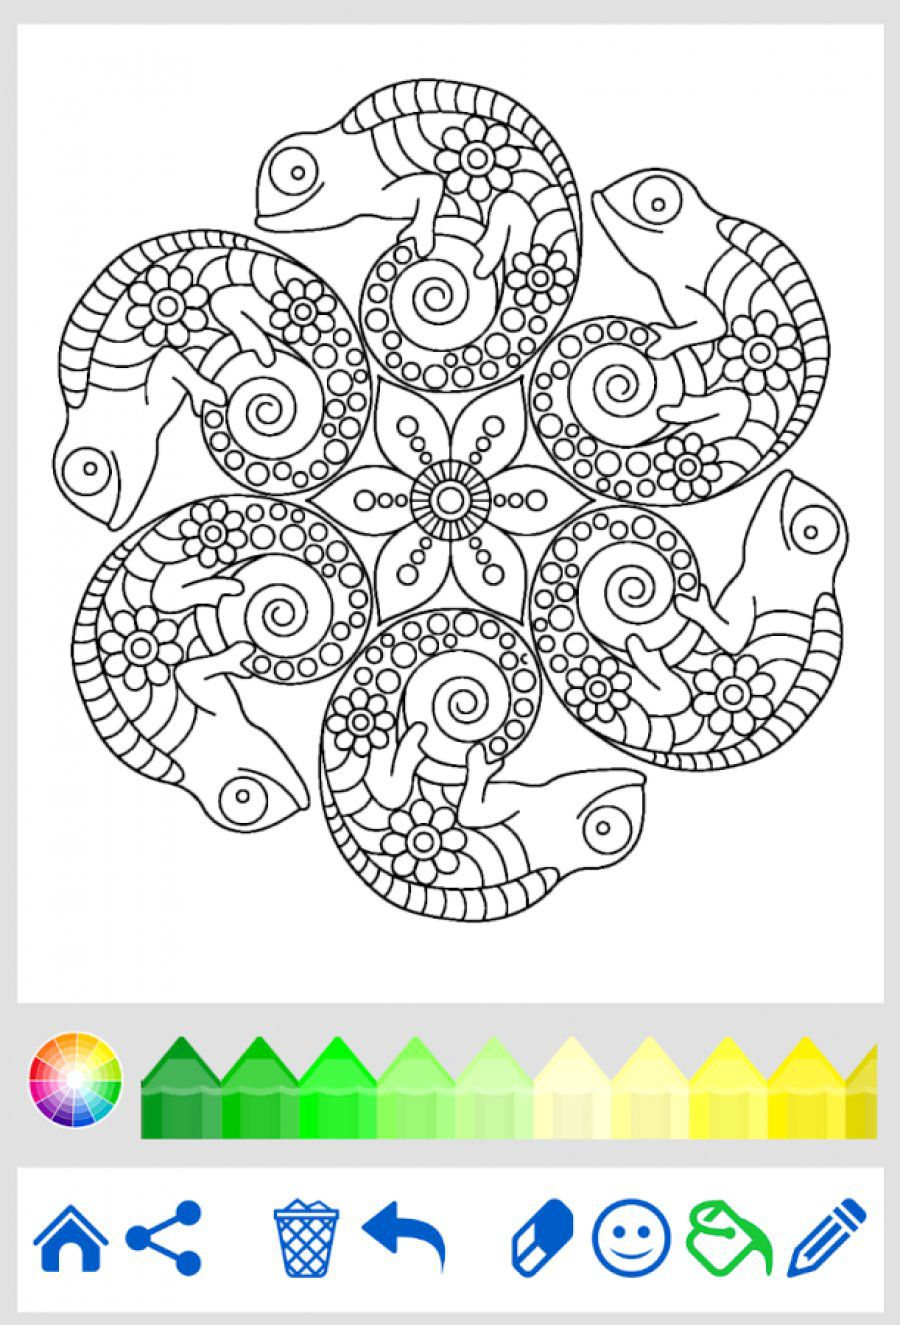 Ubuntu coloring #4, Download drawings